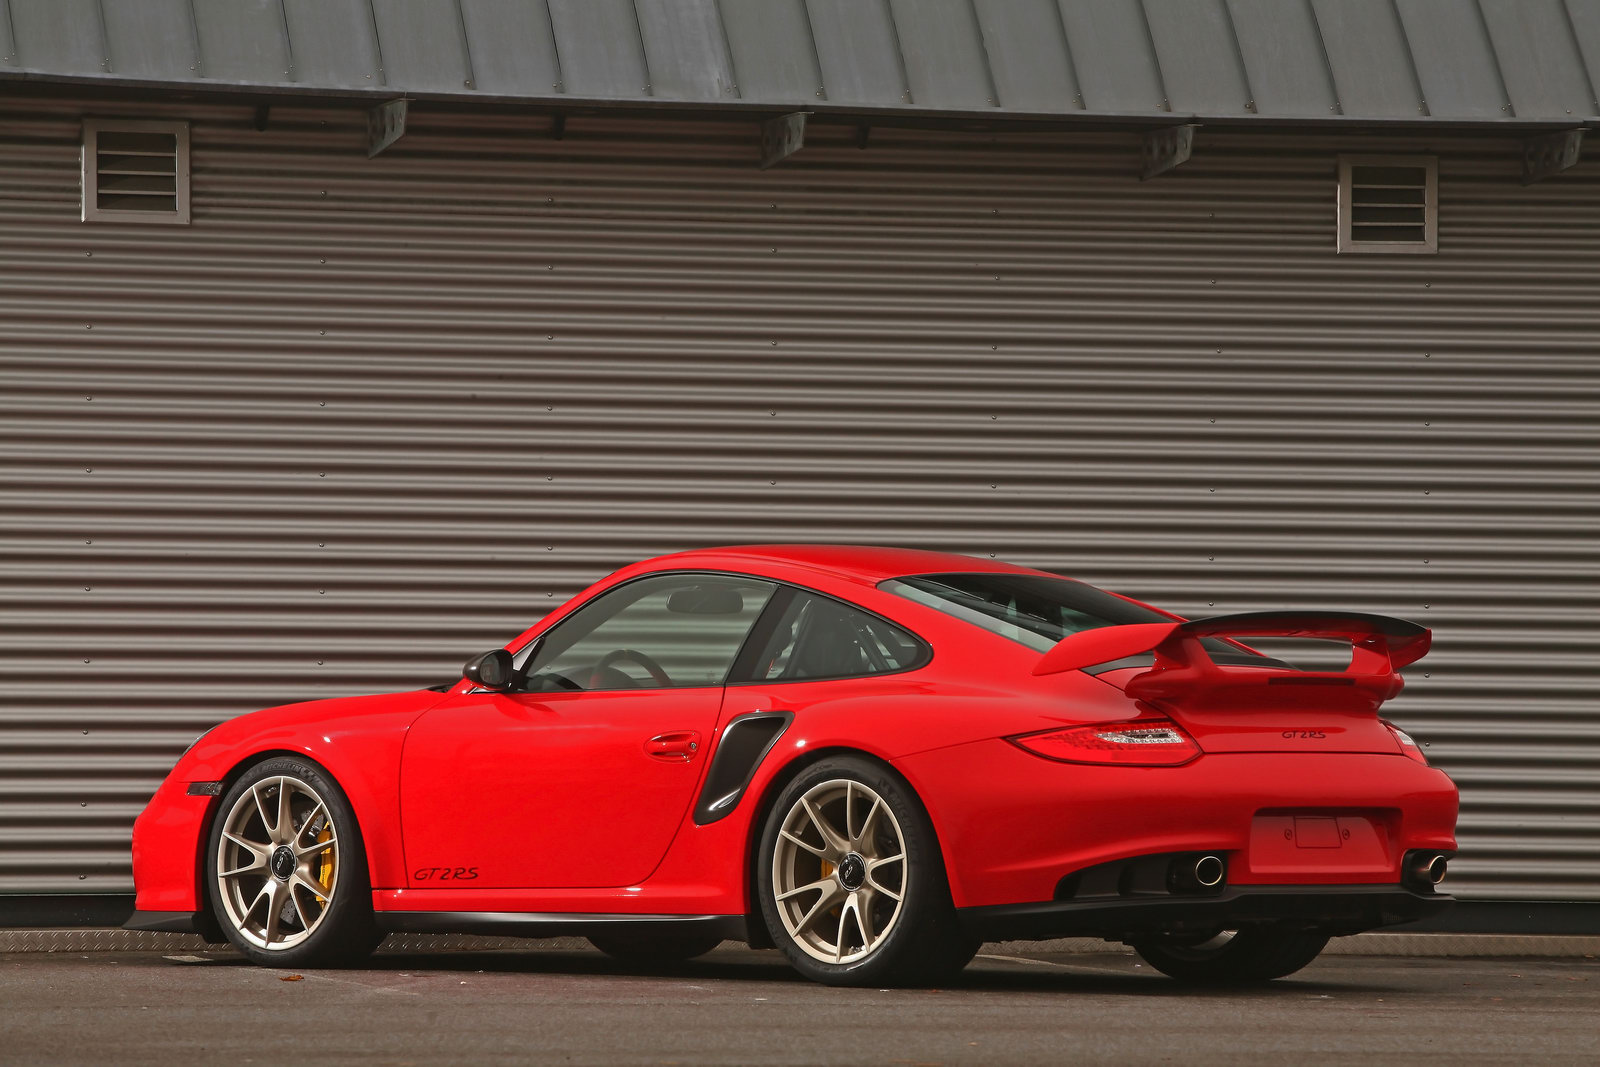 Wimmer Rs Upgrades The Porsche 911 Gt2 Rs Autoevolution